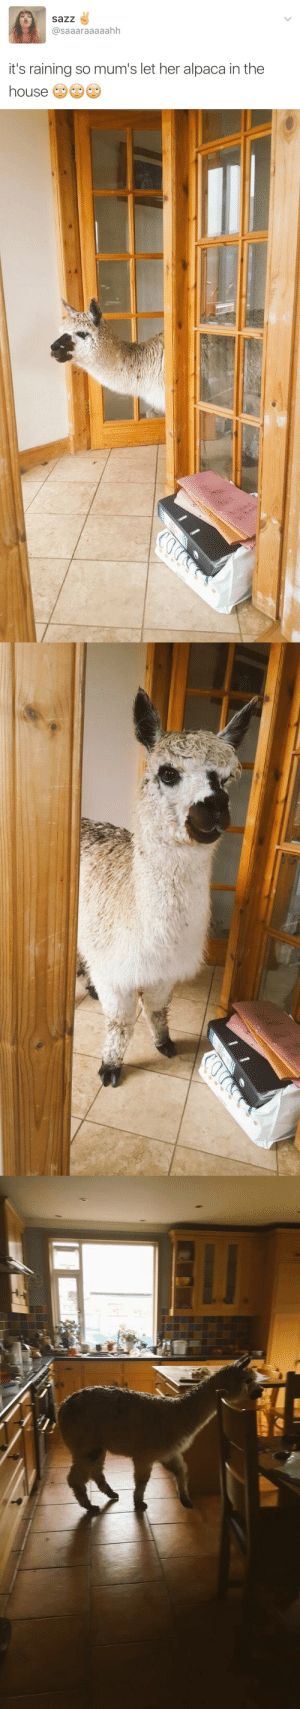 Fuck, House, and Alpaca: sazz  @saaaraaaaahh  it's raining so mum's let her alpaca in the  house Why the fuck are you annoyed? This is NOT a problem but a fortunate, benevolent, holy event.